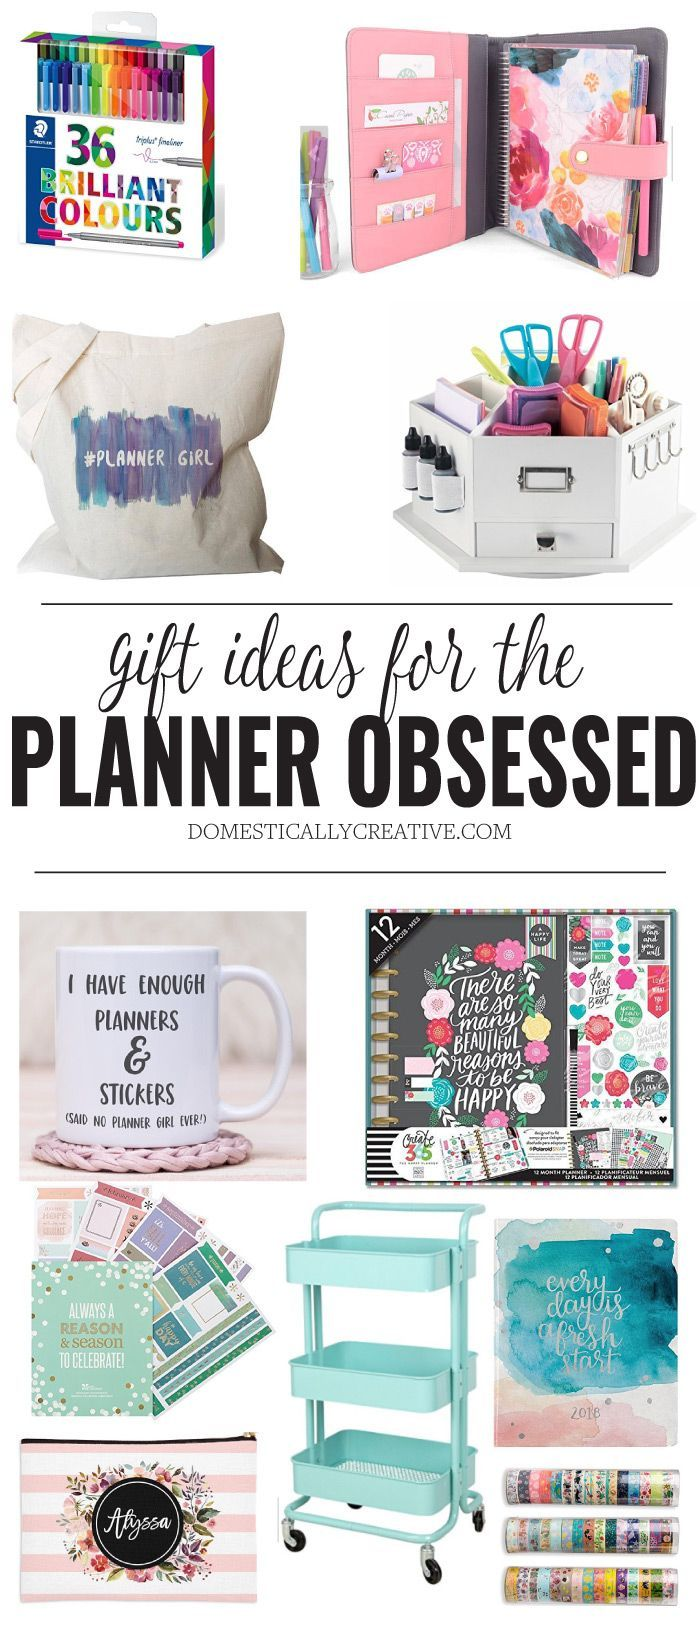 tons of great idea for the planner addict in your life #happyplanner #erincondrenplanner #planneraddict #plannergift #giftguide #domesticallycreative